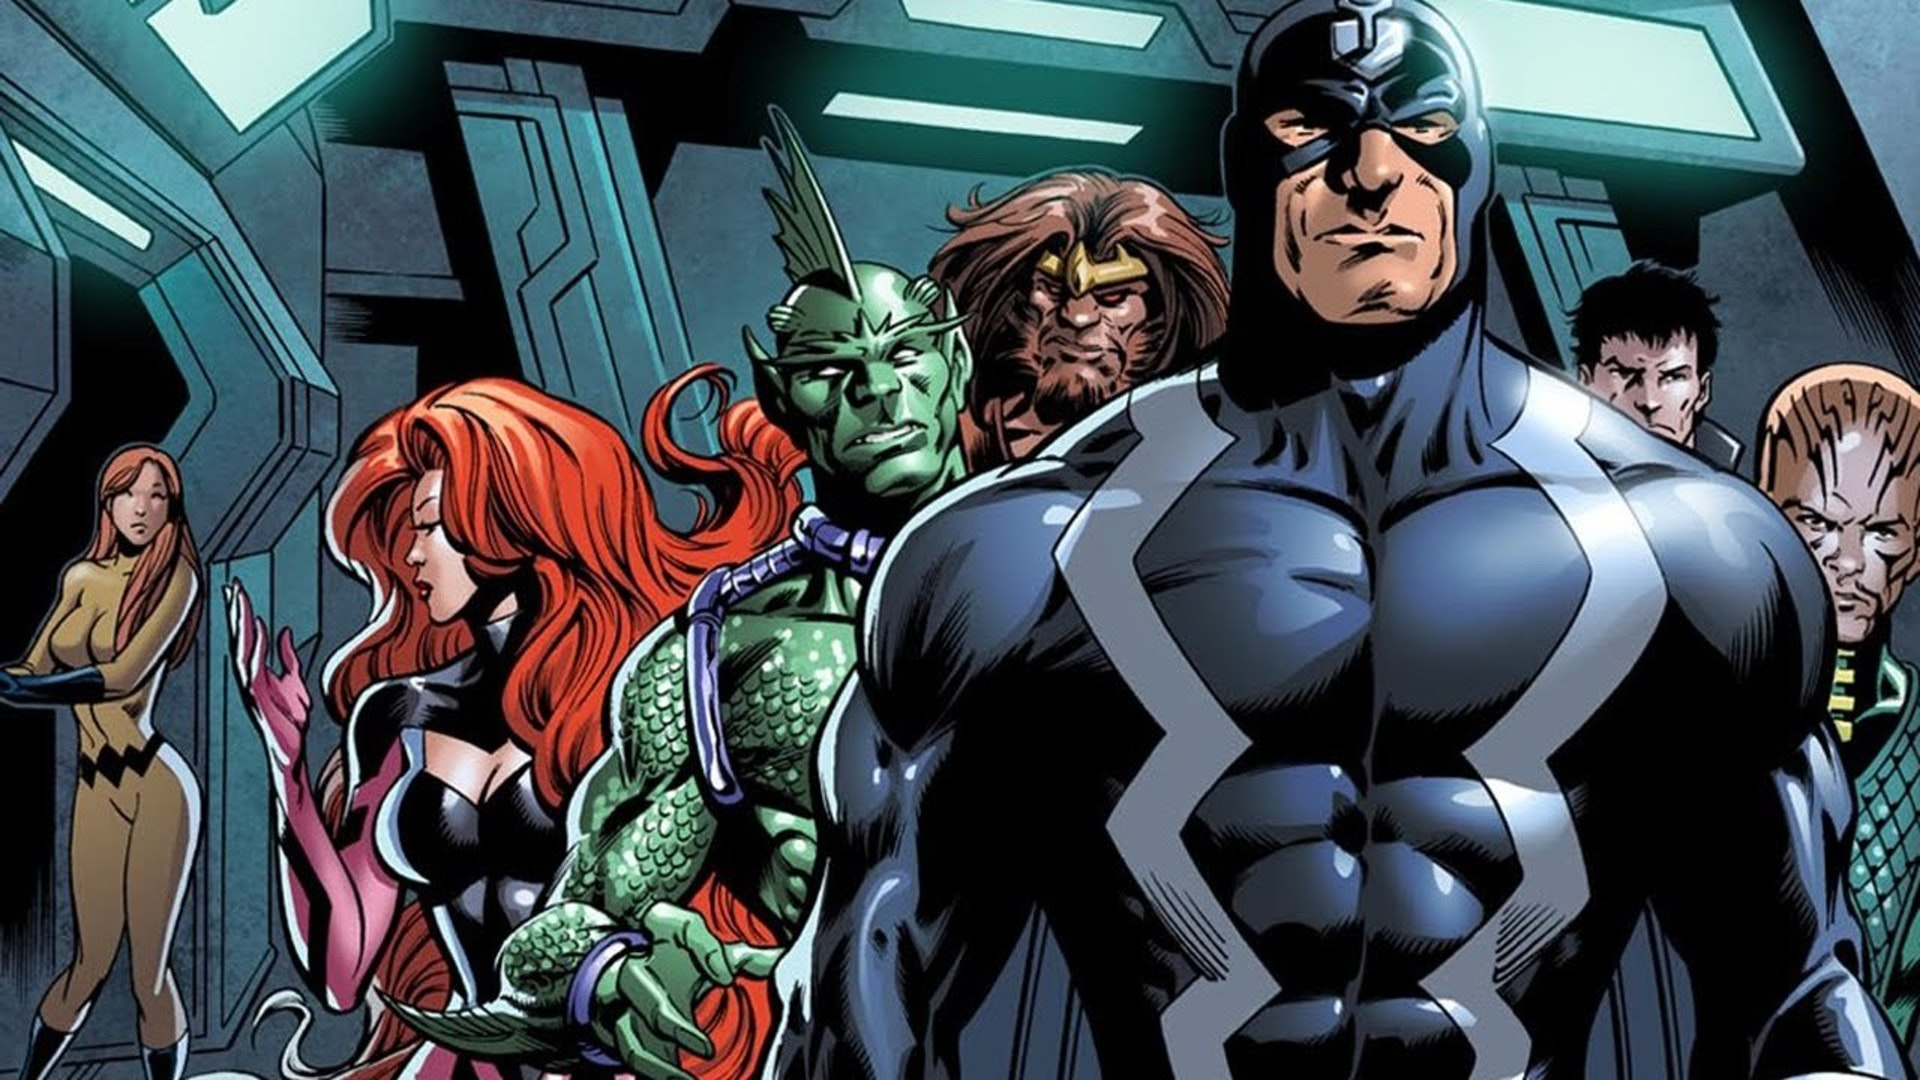 The Inhumans were downgraded from major motion picture to network TV show.